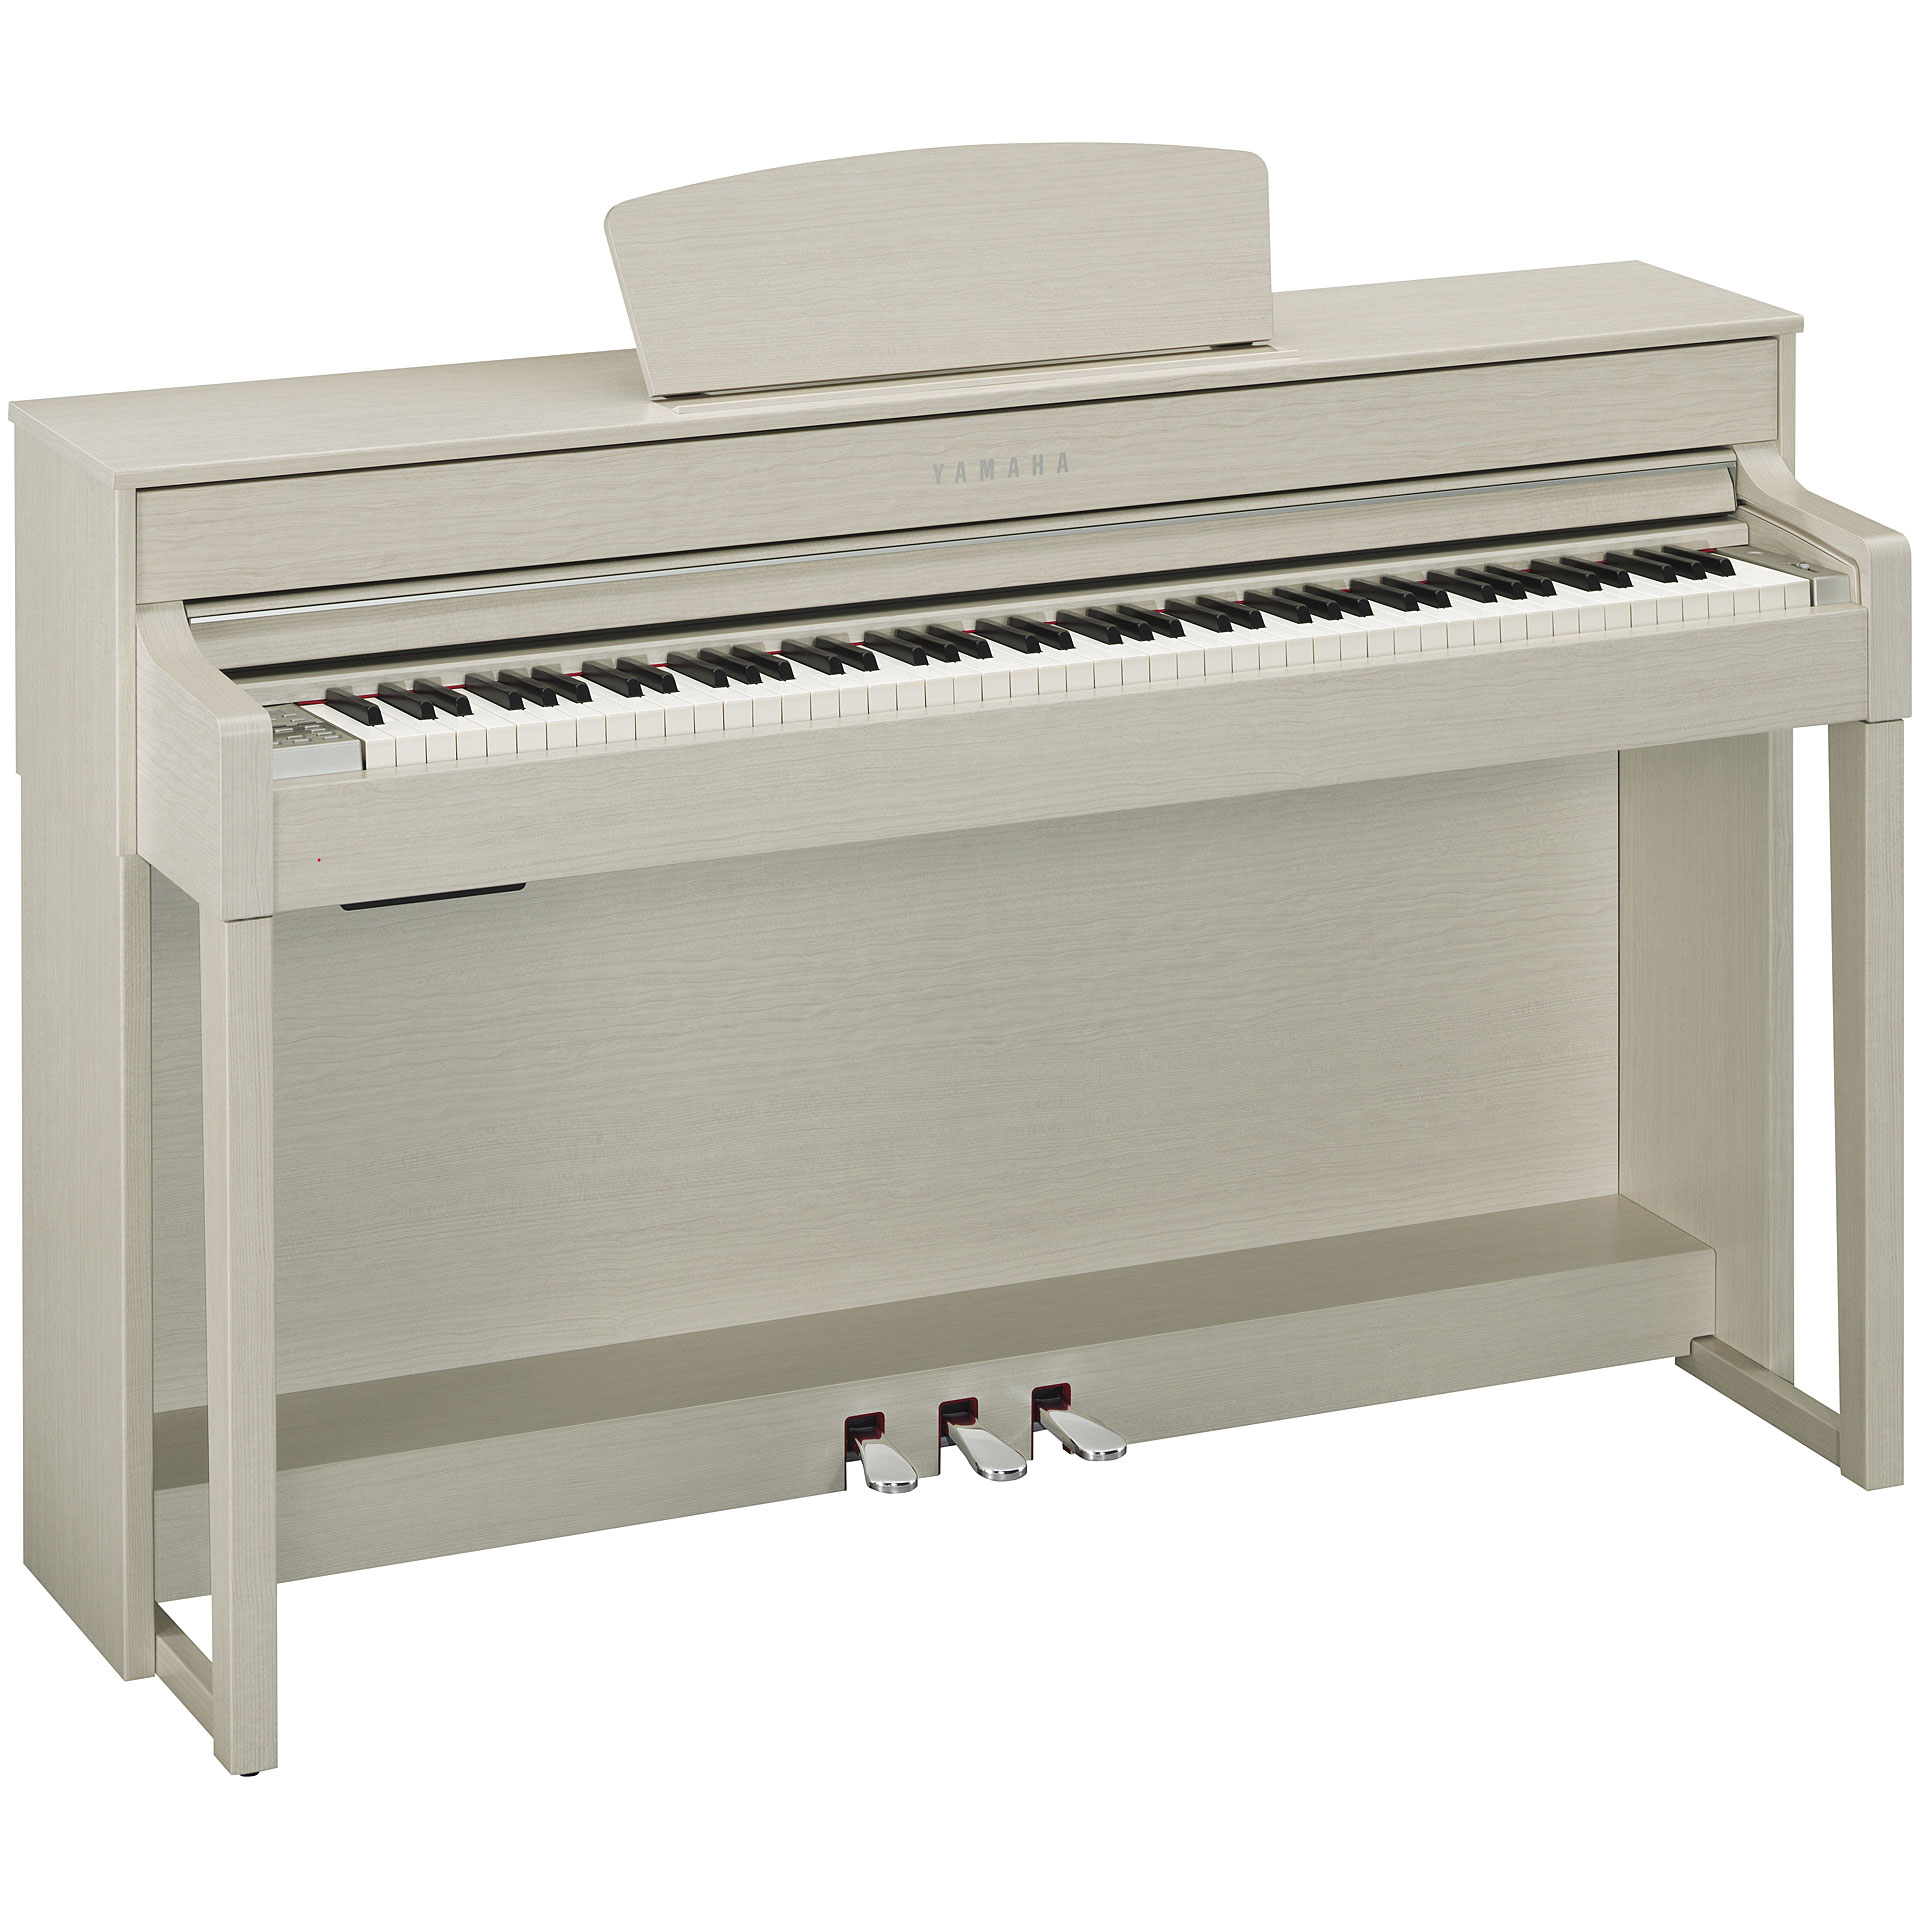 yamaha clavinova clp 535wa piano num rique. Black Bedroom Furniture Sets. Home Design Ideas